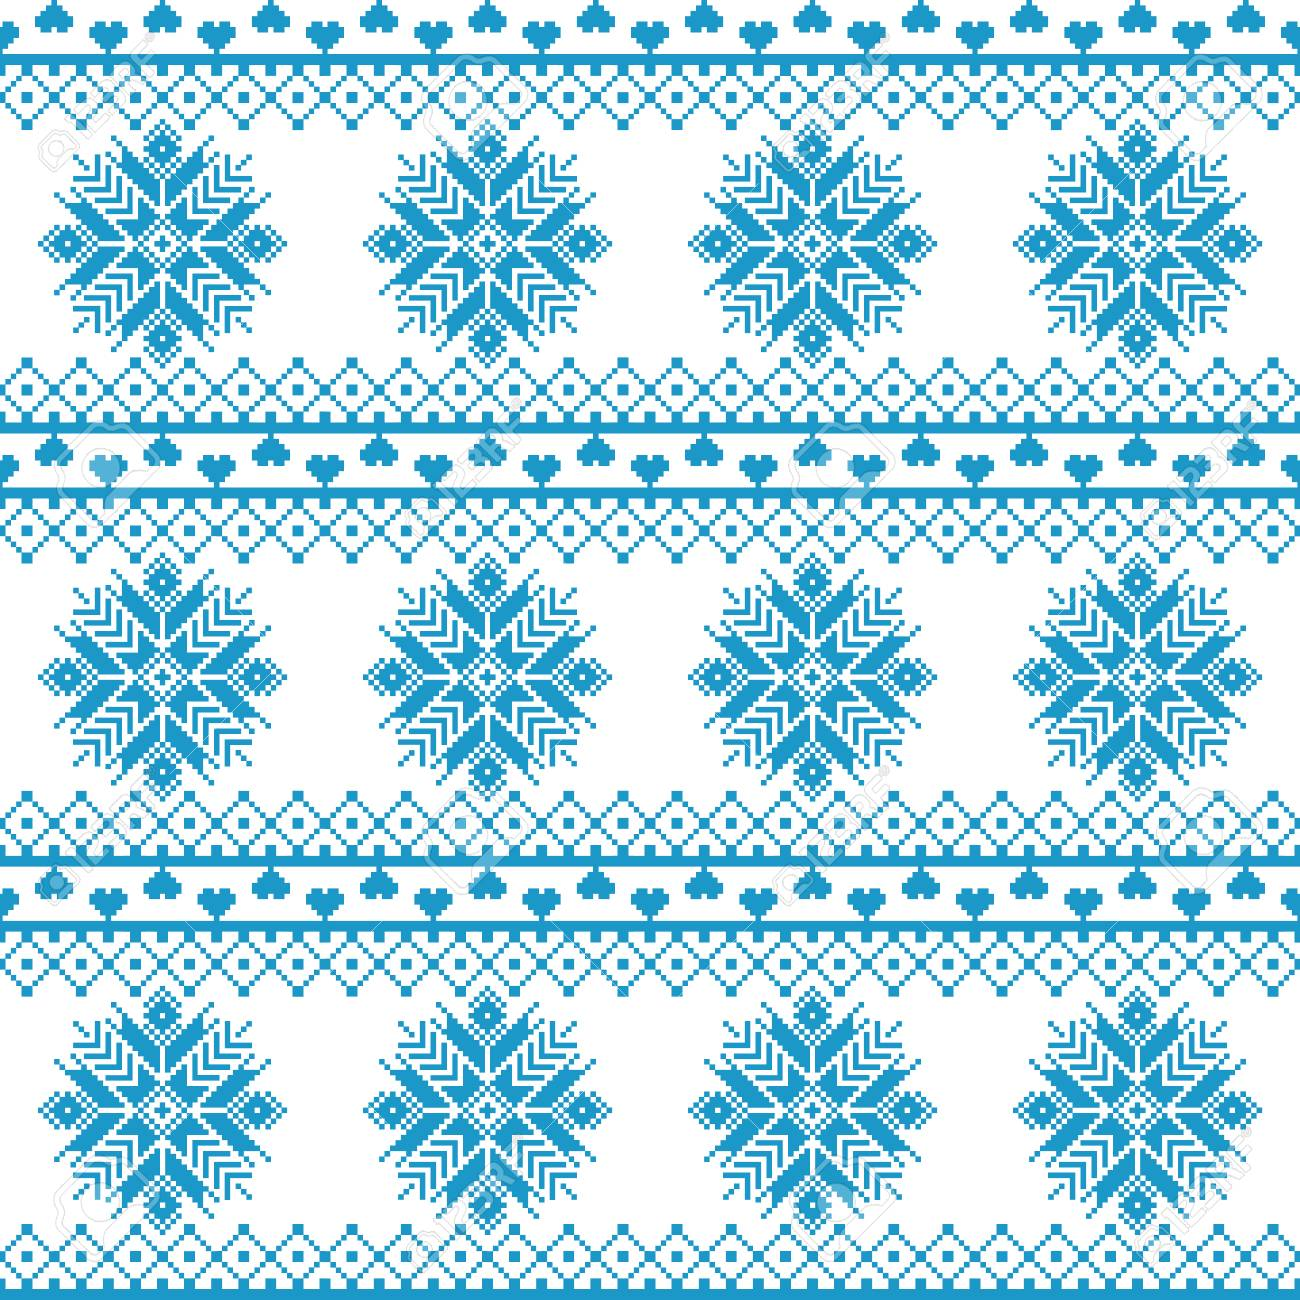 Christmas Gift Wrapper Design.Seamless Fabric The Occasion Merry Christmas And Happy New